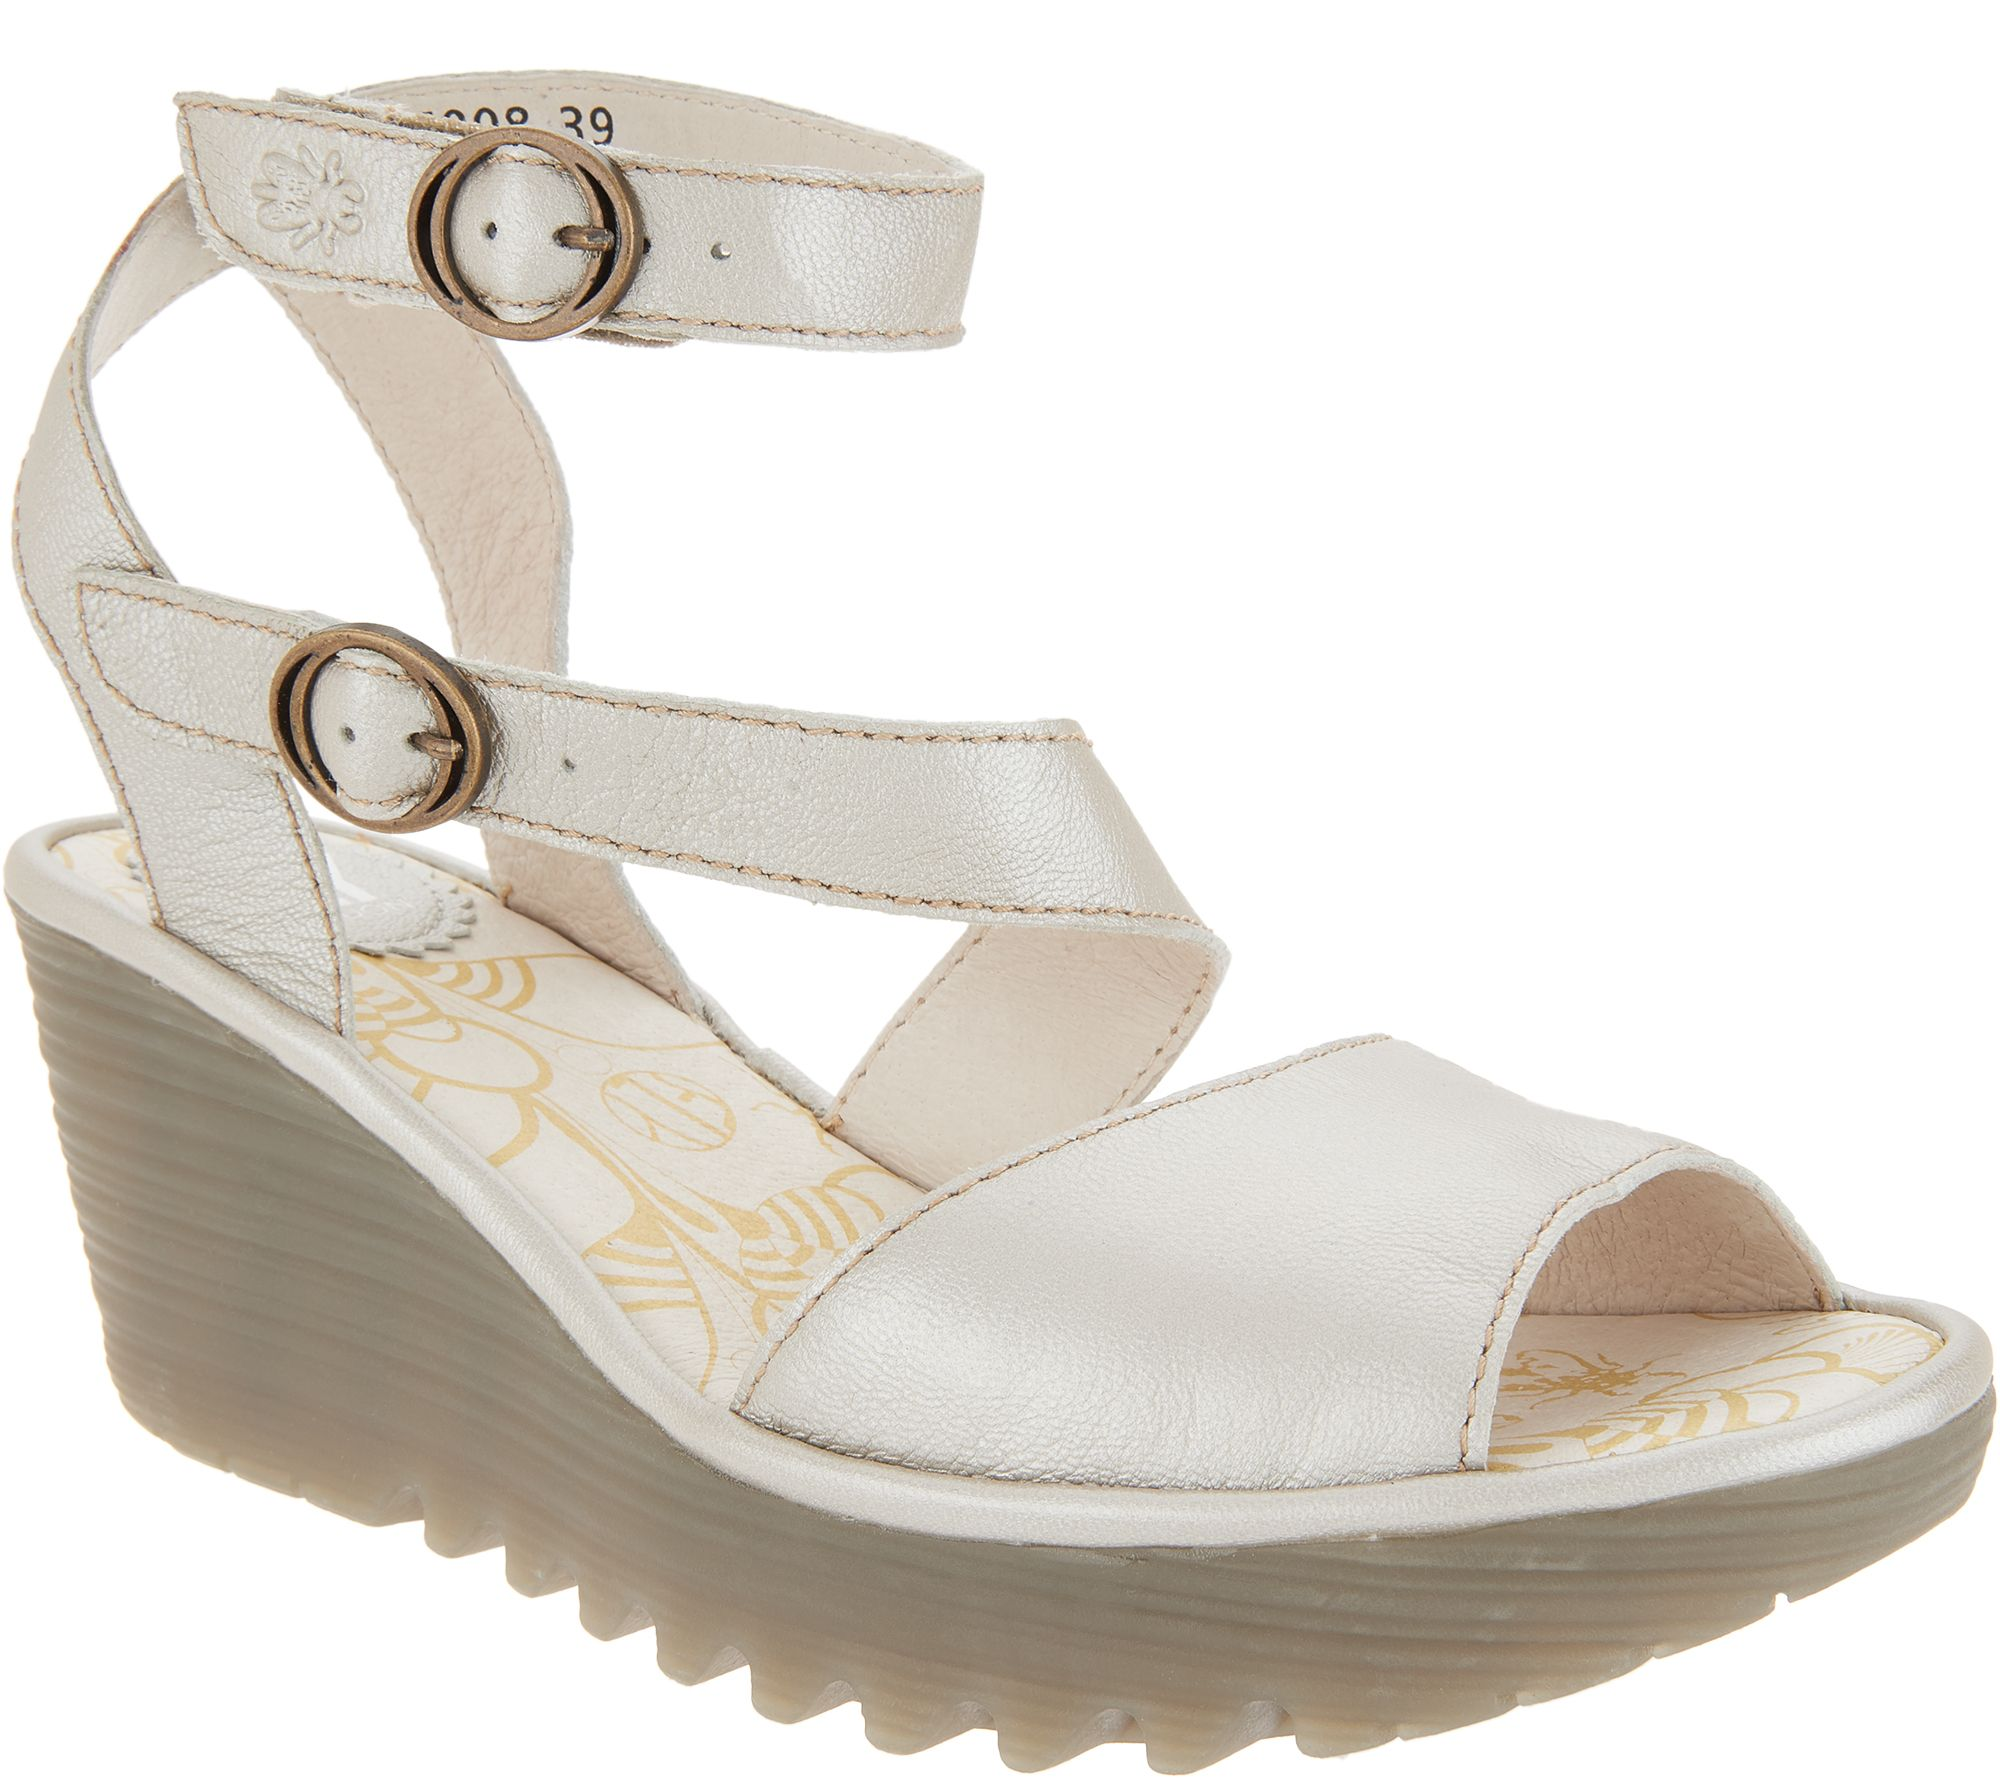 5c73633455a FLY London Leather Multi-Strap Wedge Sandals - Yisk - Page 1 — QVC.com